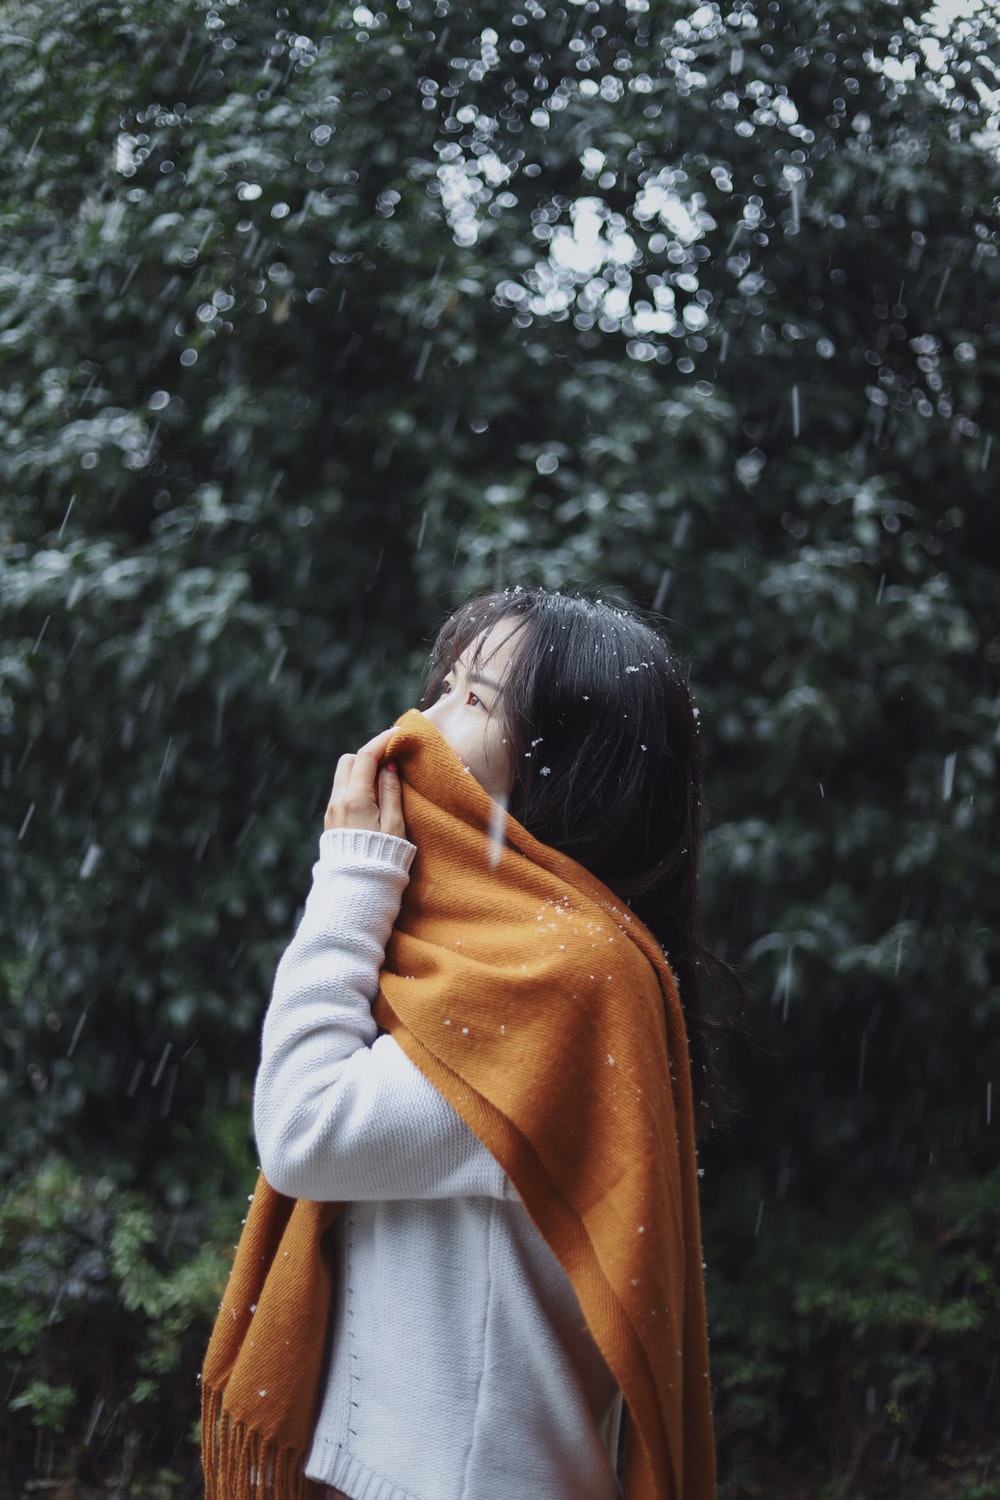 girl stands outdoors in rain